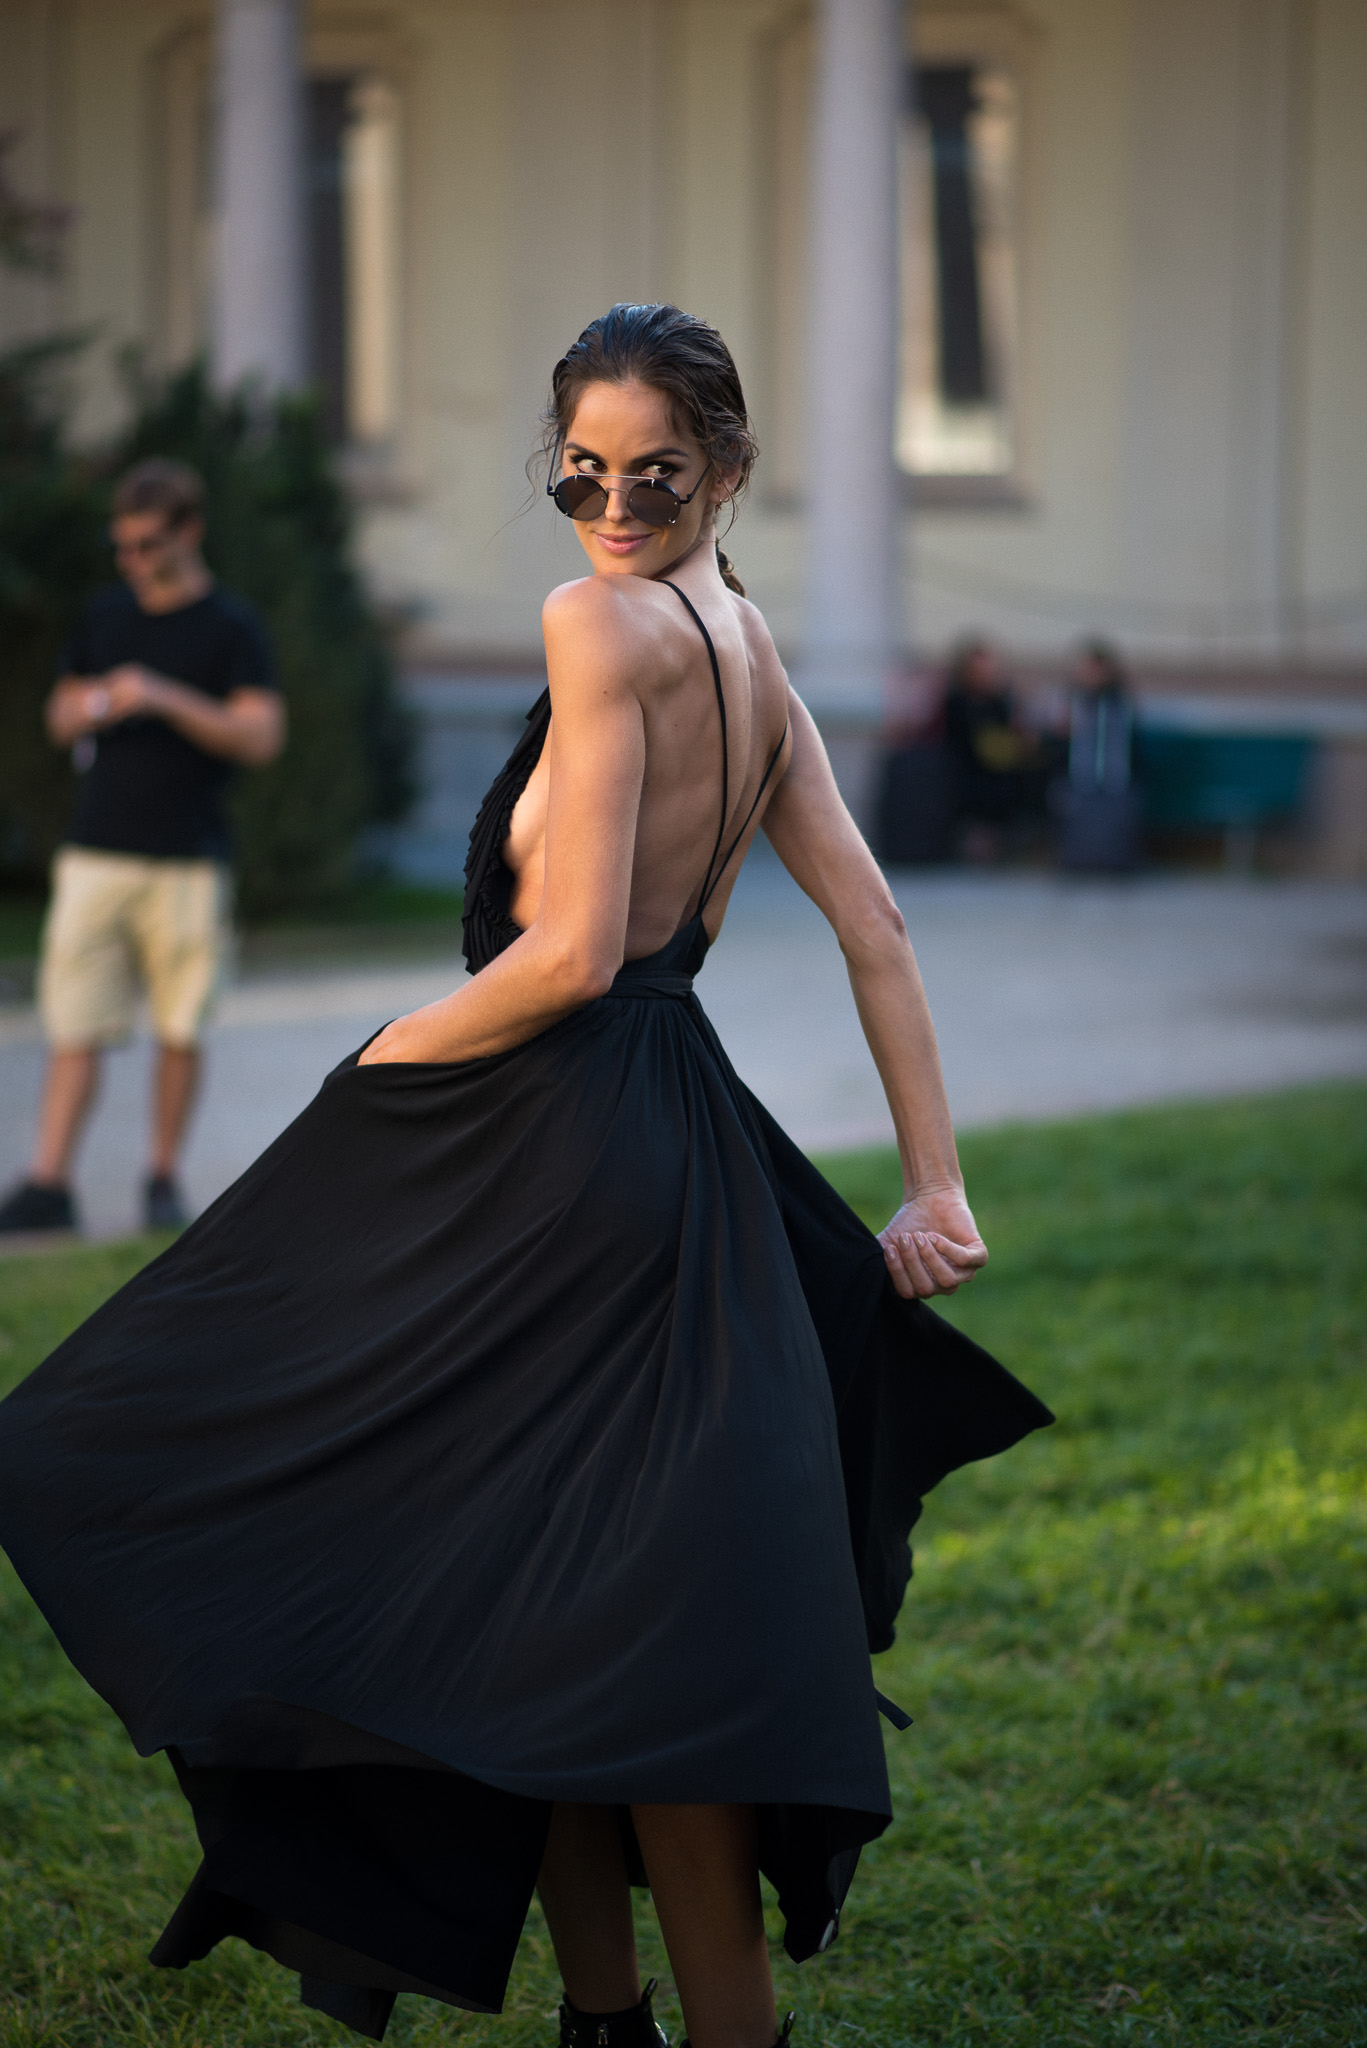 Izabel Goulart Models Off Duty Gucci Milan Fashion Week September 2017 Photography Annika Lagerqvist www.annikasomething.com